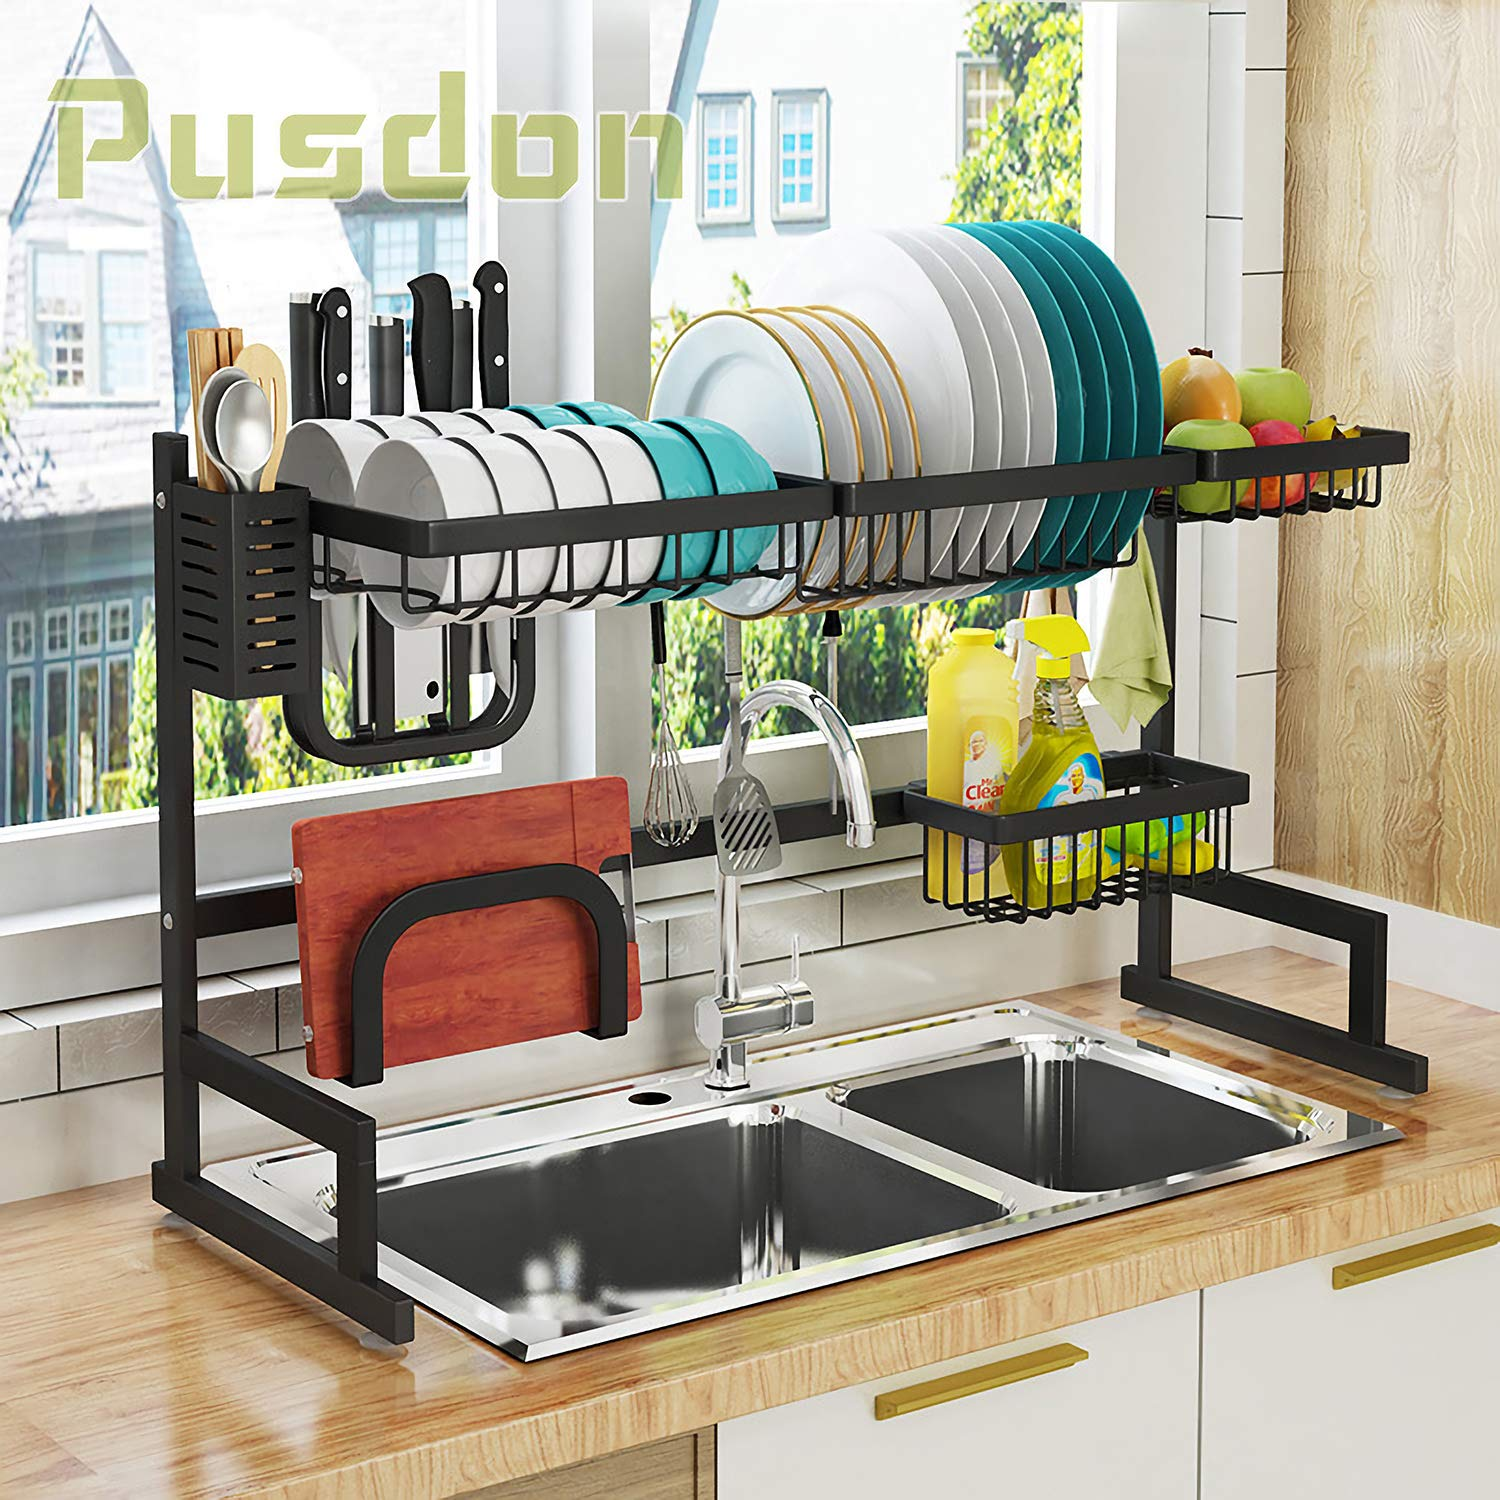 Over Sink(32'') Dish Drying Rack, Drainer Shelf for Kitchen Supplies Storage Counter Organizer Utensils Holder Stainless Steel Display- Kitchen Space Save Must Have (Sink size ≤ 32 1/2 inch, black) by PUSDON